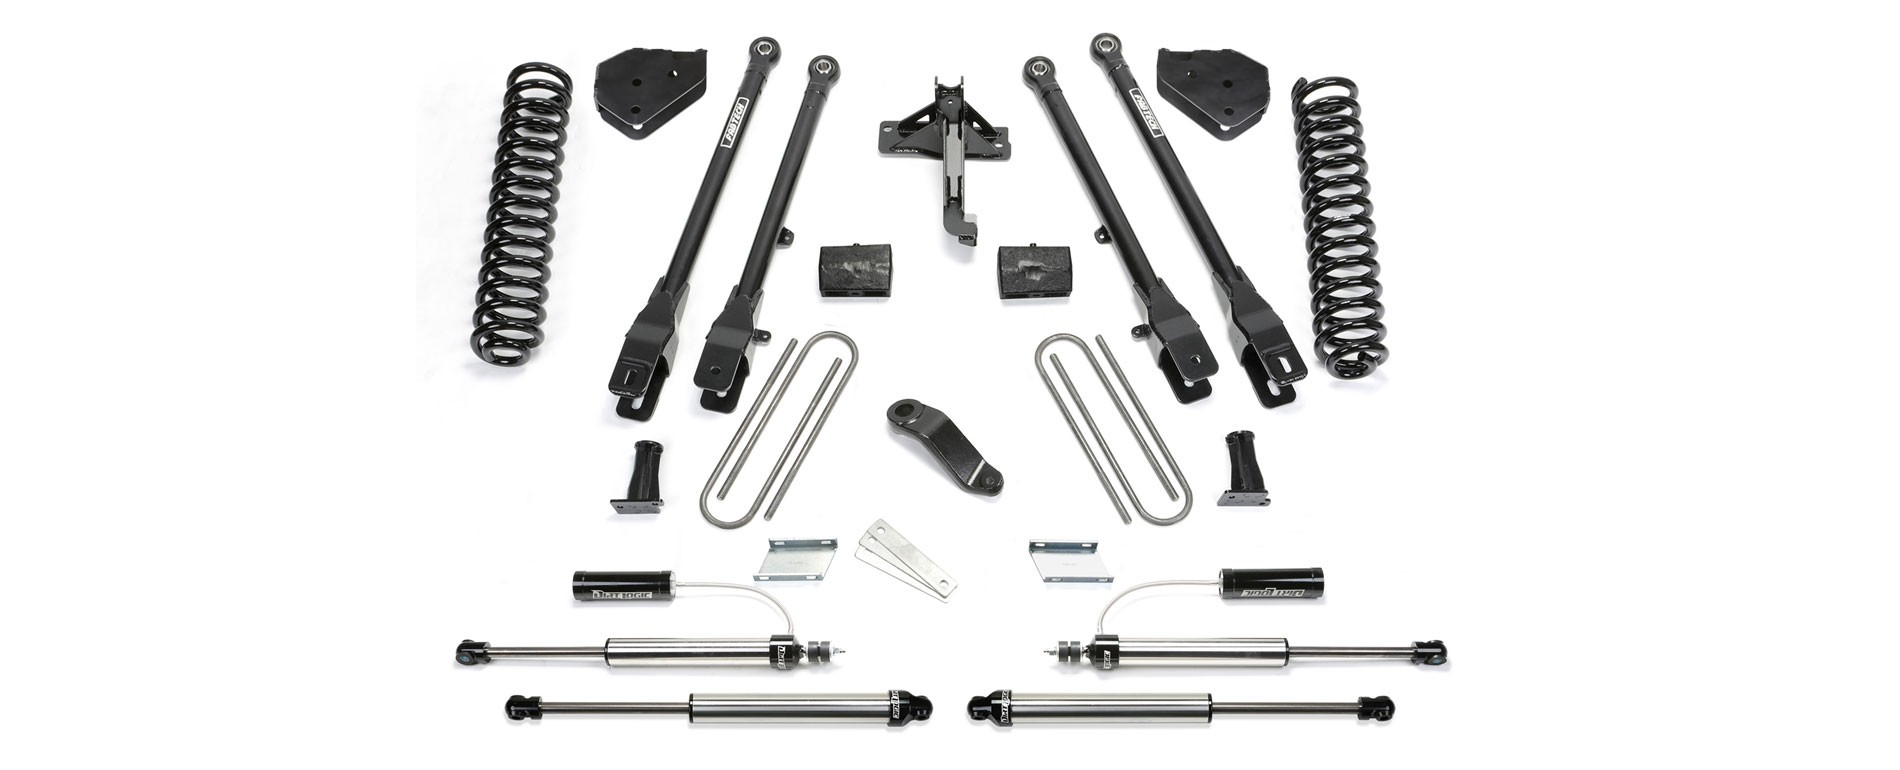 "FABTECH  2017   6"" 4 Link System w/ Front Dirt Logic 2.25 Resi Shocks & Rear Dirt Logic 2.25 Shocks - Ford F250/F350 4WD"